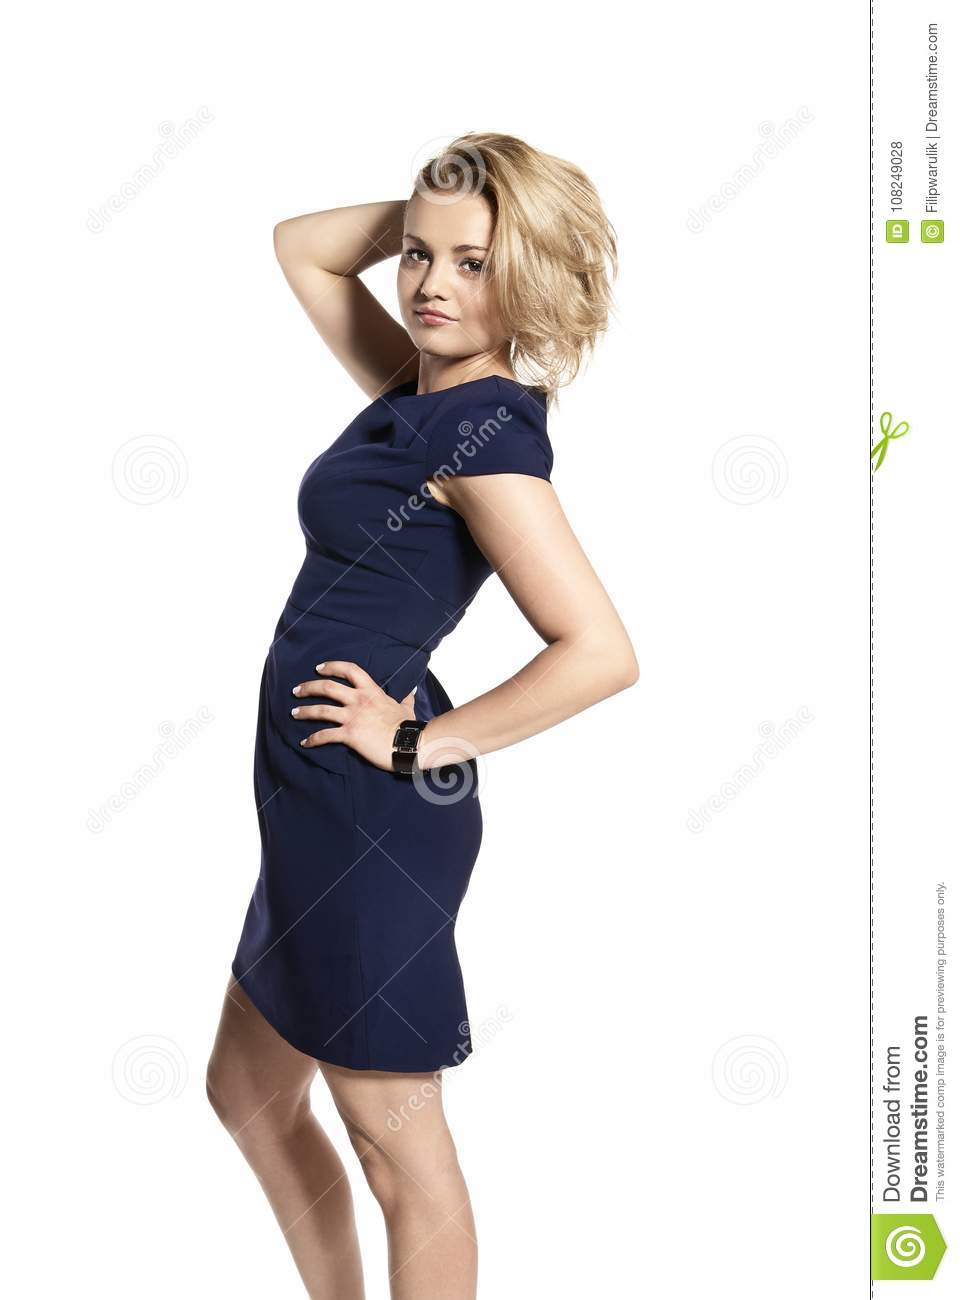 73f72f1ce blonde young woman in a navy blue dress poses in front of the camera.  Isolated on white background.